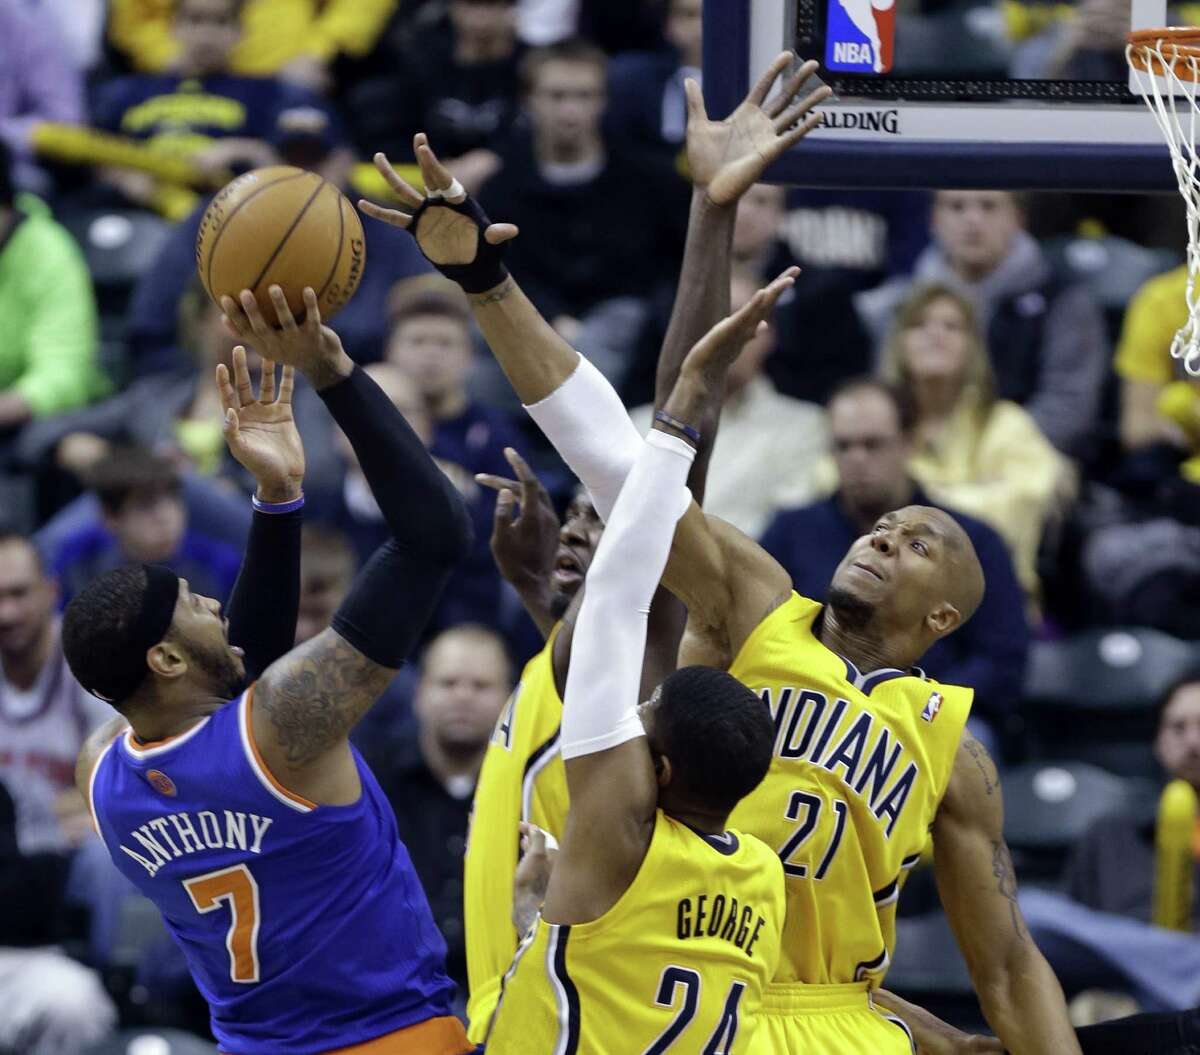 Knicks forward Carmelo Anthony tries to shoot over the Pacers' Paul George (24), David West (21) and Roy Hibbert (partially hidden, center) during Indiana's blowout victory at Bankers Life Fieldhouse.